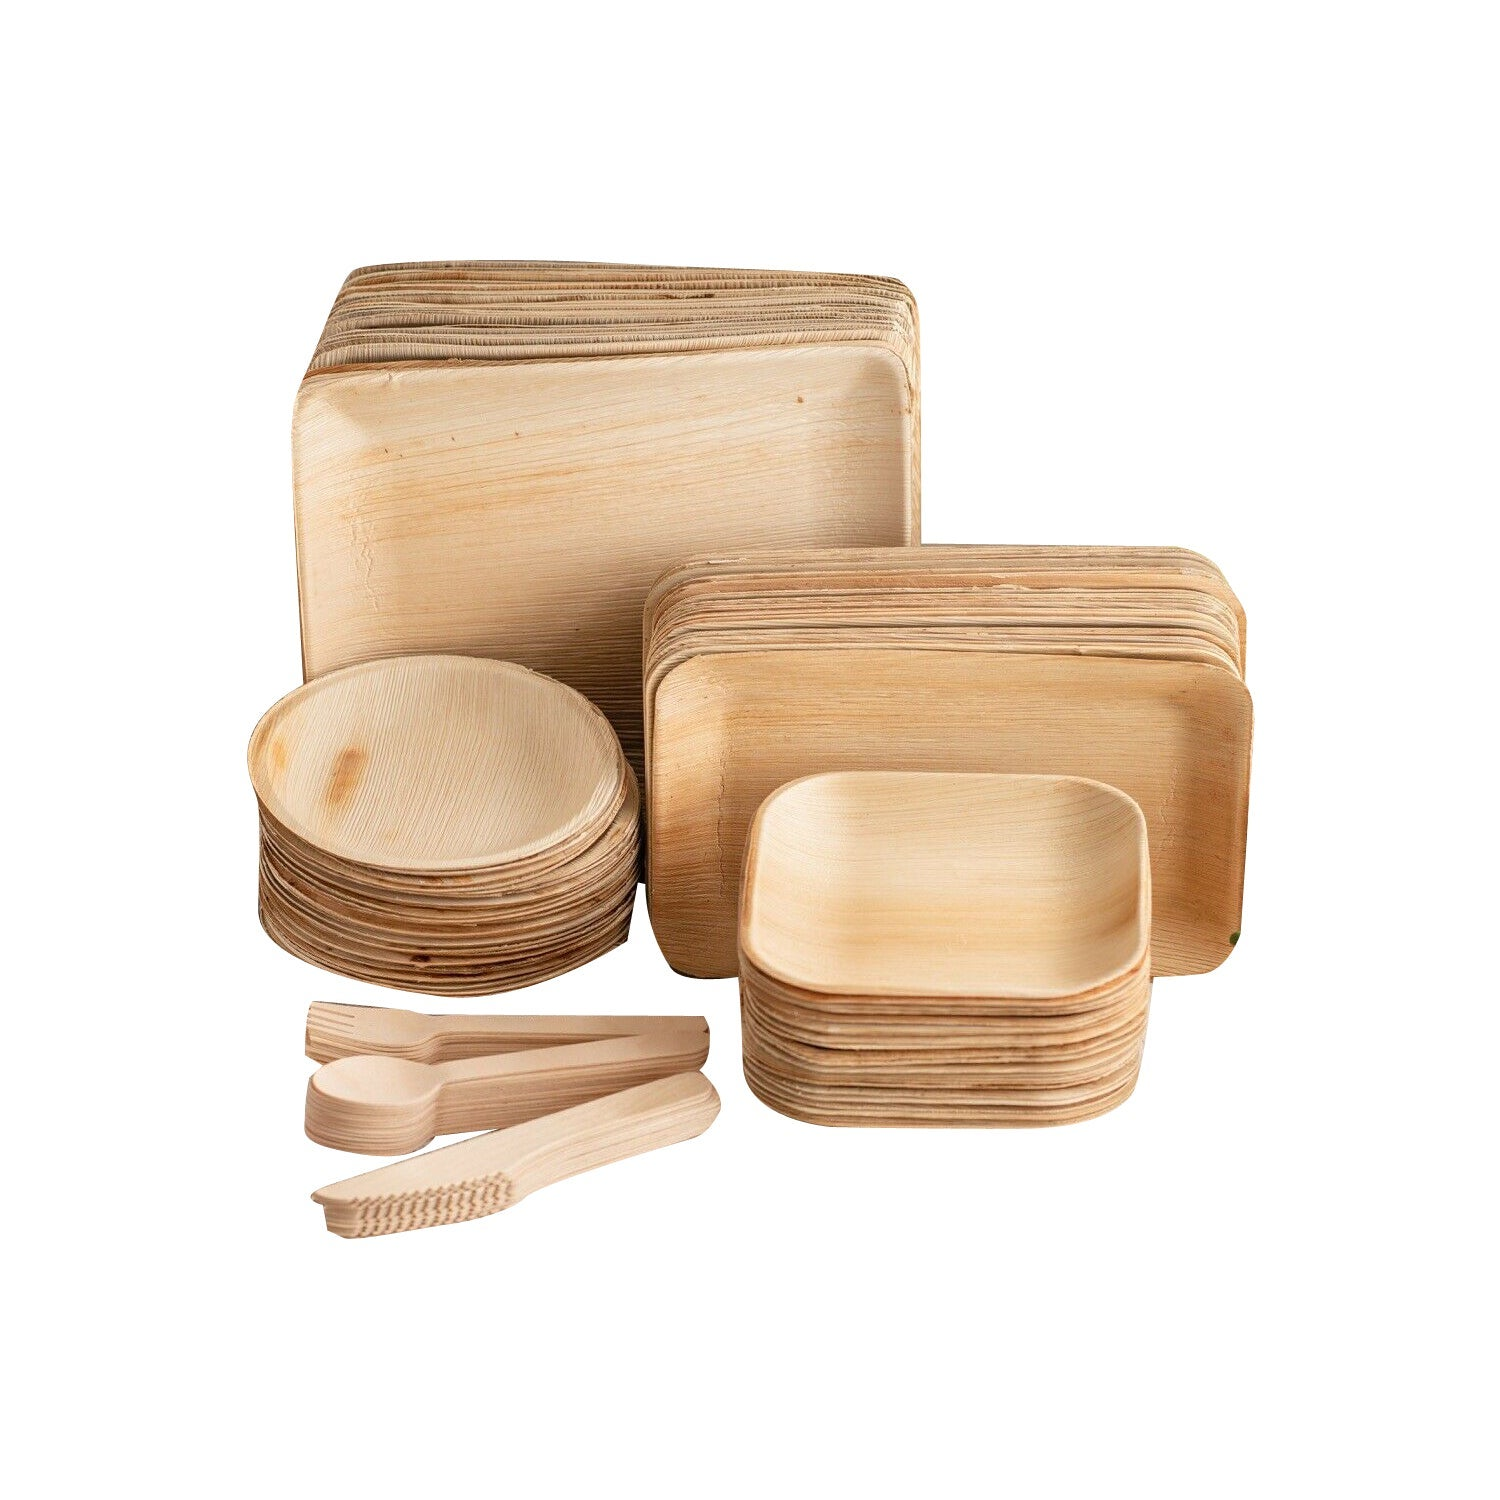 Disposable Biodegradable Compostable EcoFriendly Plate Cutlery Party Dinner Pack